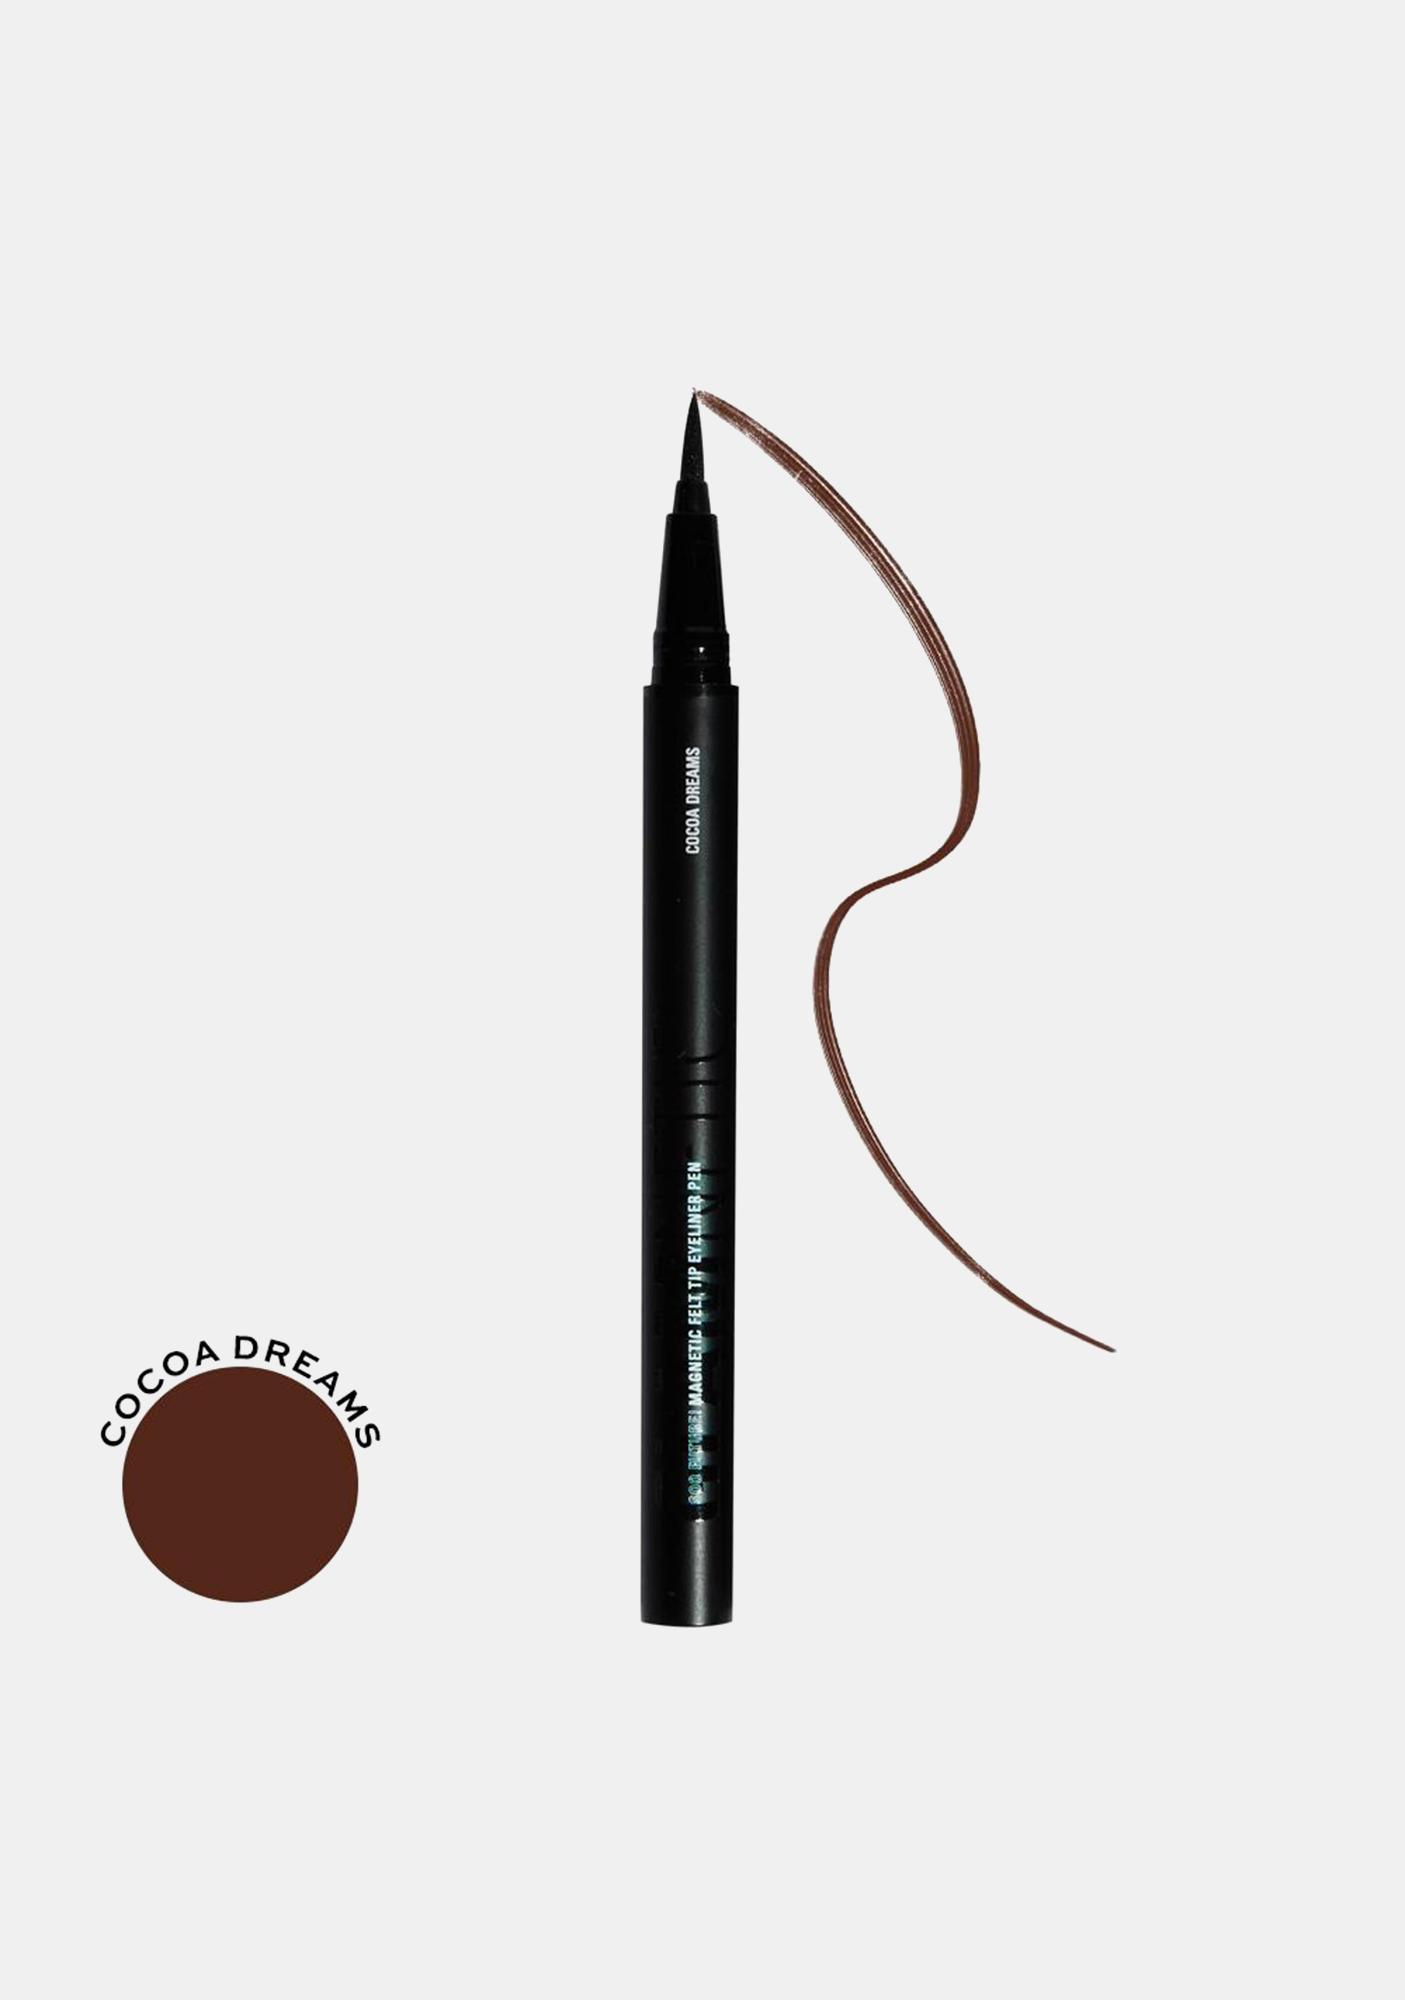 Glamnetic Cocoa Dreams Soo Future! Magnetic Felt Tip Eyeliner